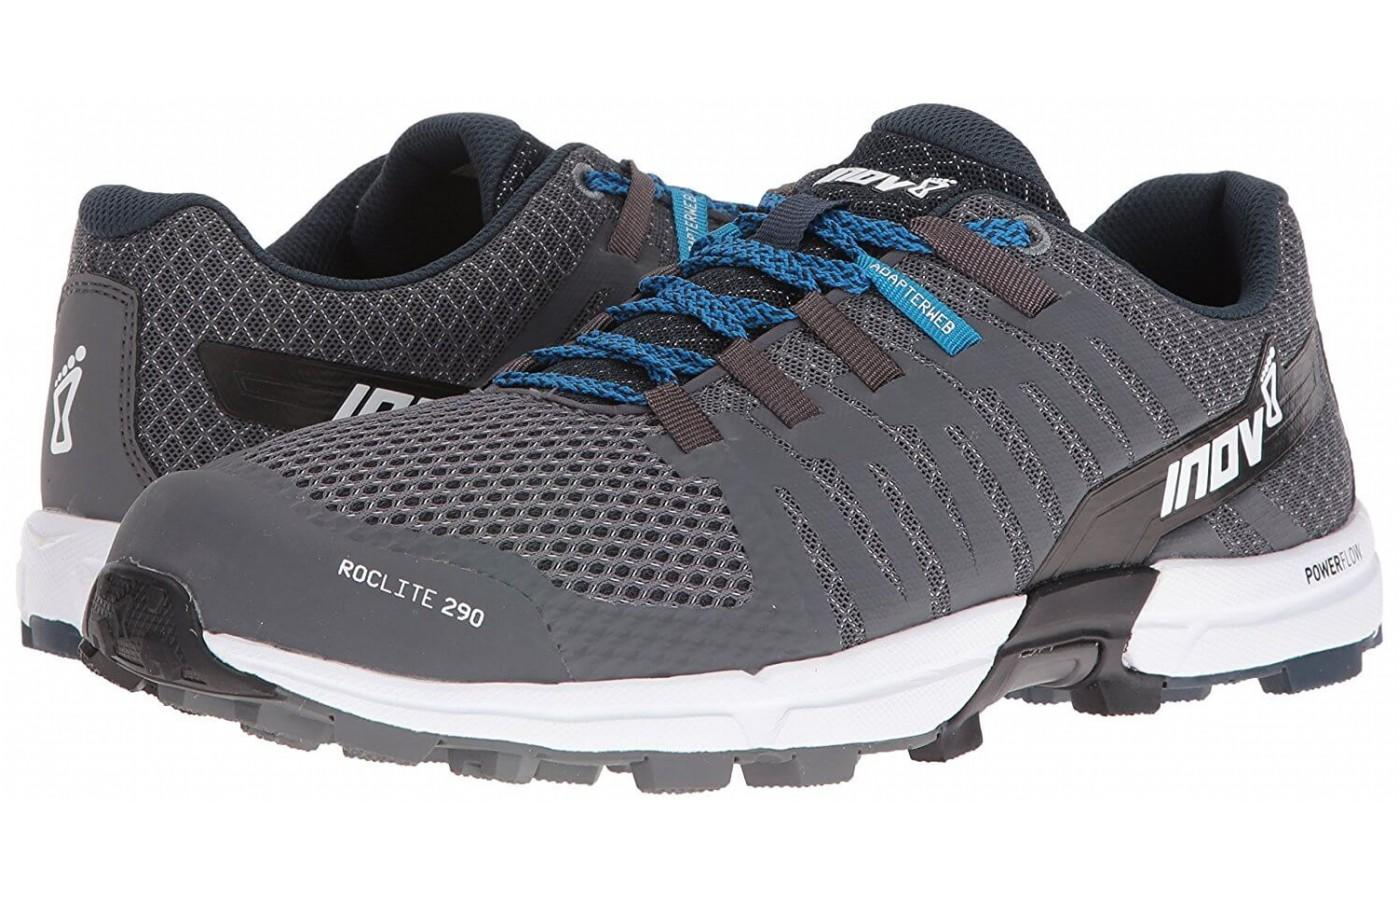 The Inov-8 Roclite 290.